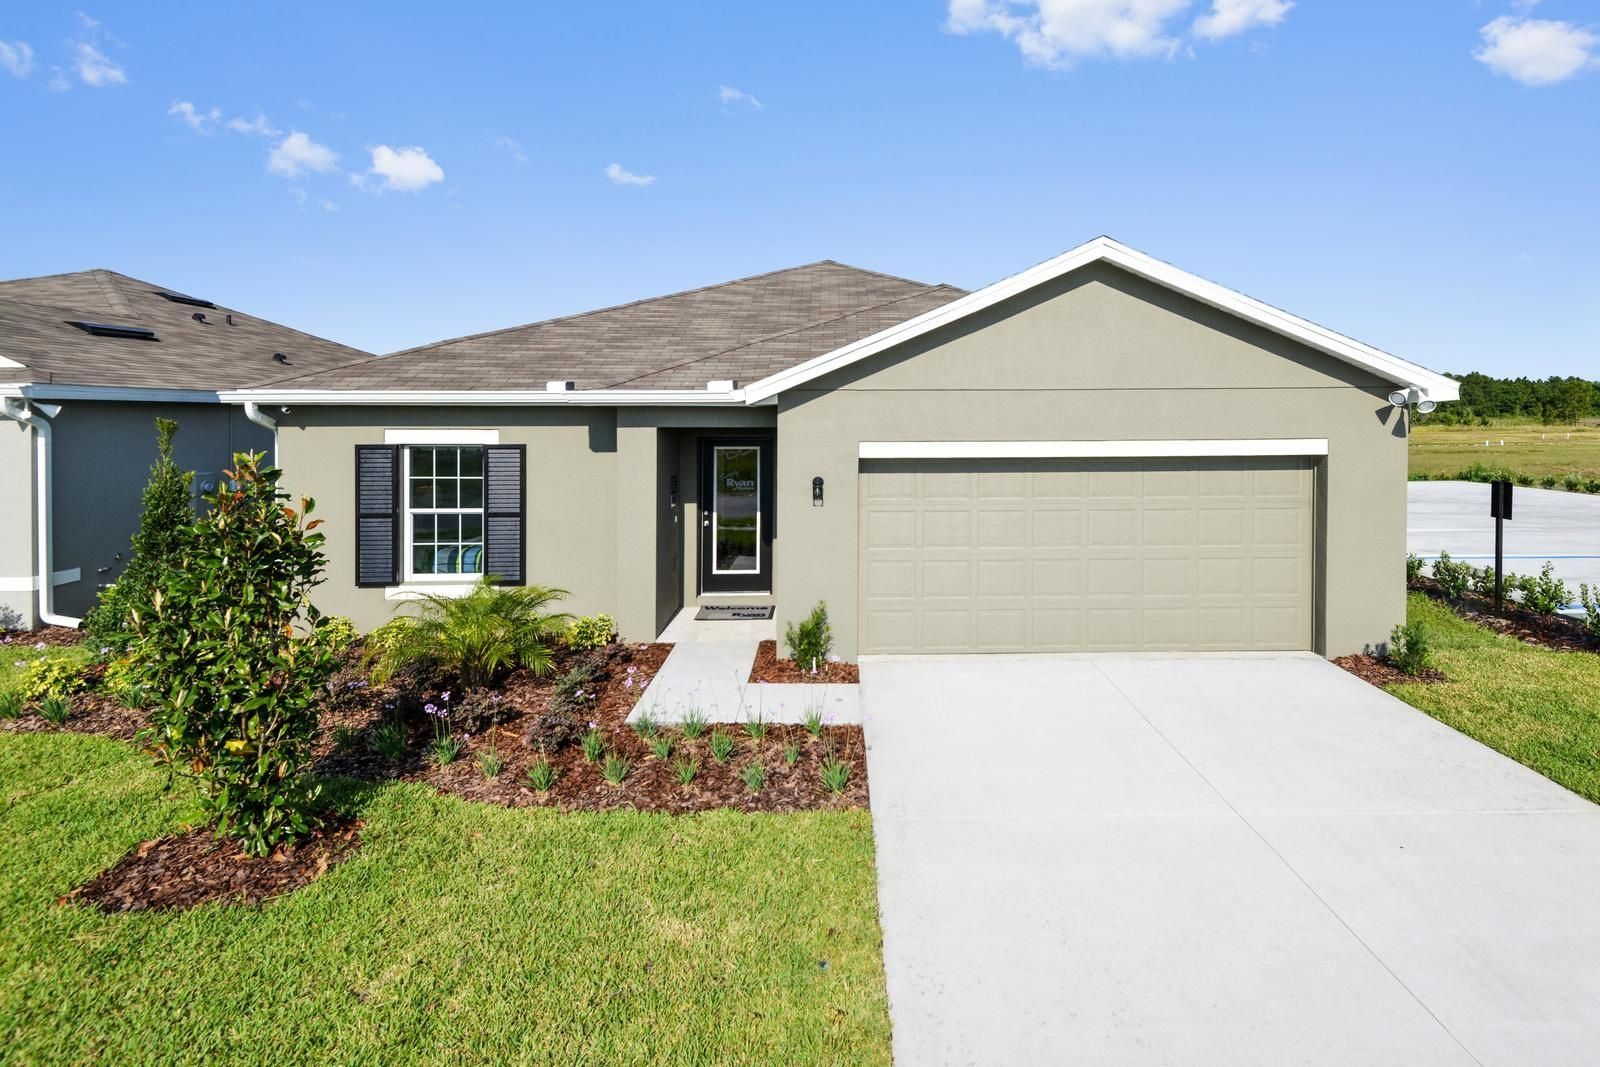 Welcome to Southern Crossing in Davenport, FL!:Welcome to one of thehottest destinations for affordable home ownership! Southern Crossing's small town charm and prime location puts you at the center of everything.Schedule a visittoday!